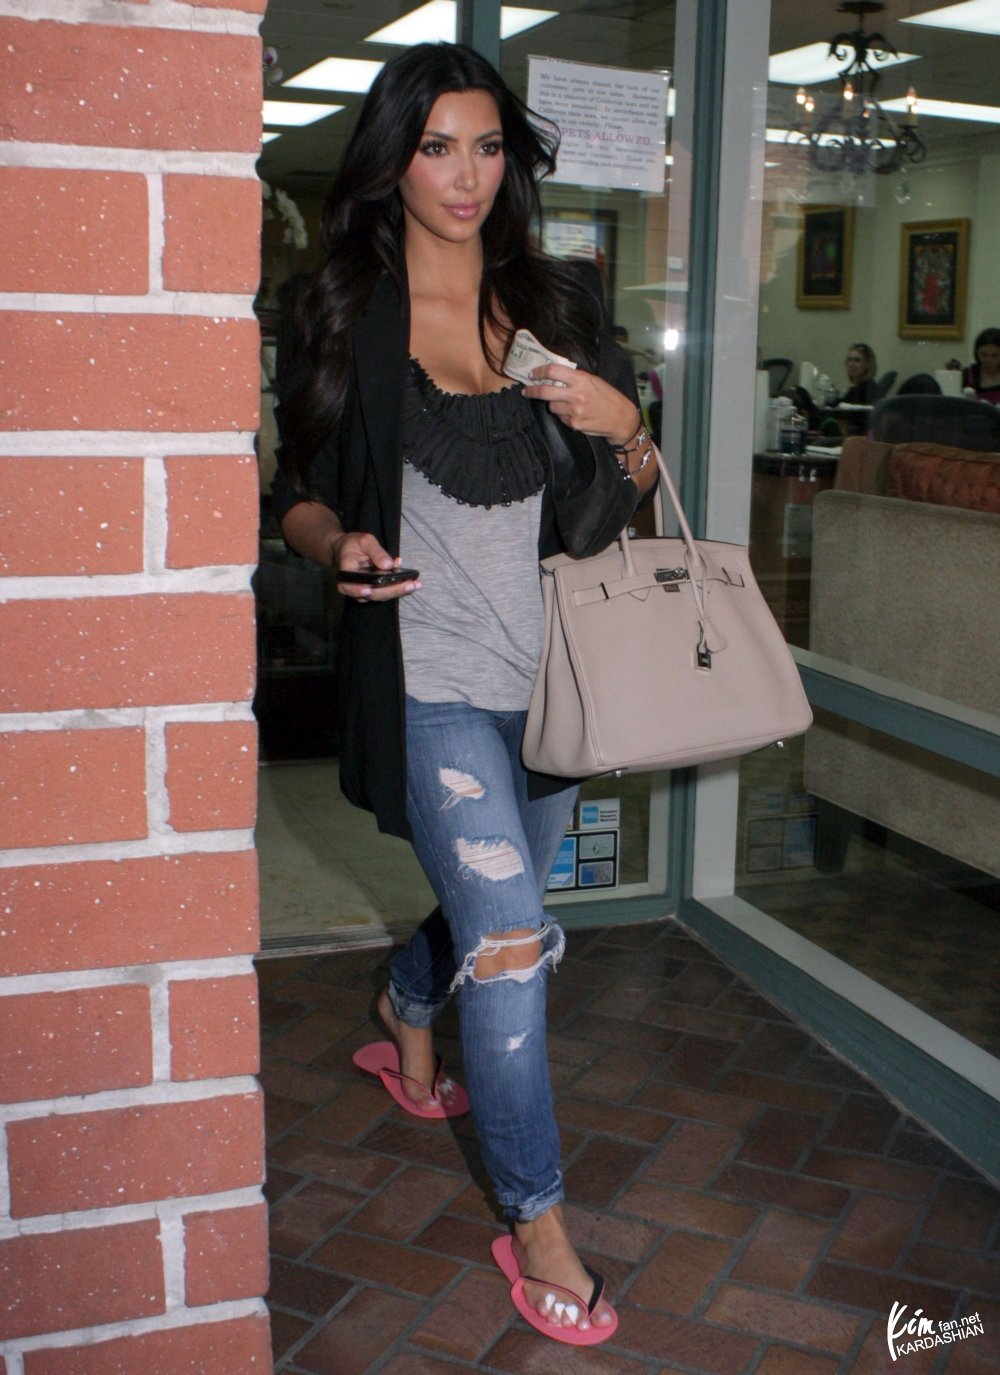 Princess Sassy\'s Blog: June 3, 2010: Kim pictured at the Montage ...